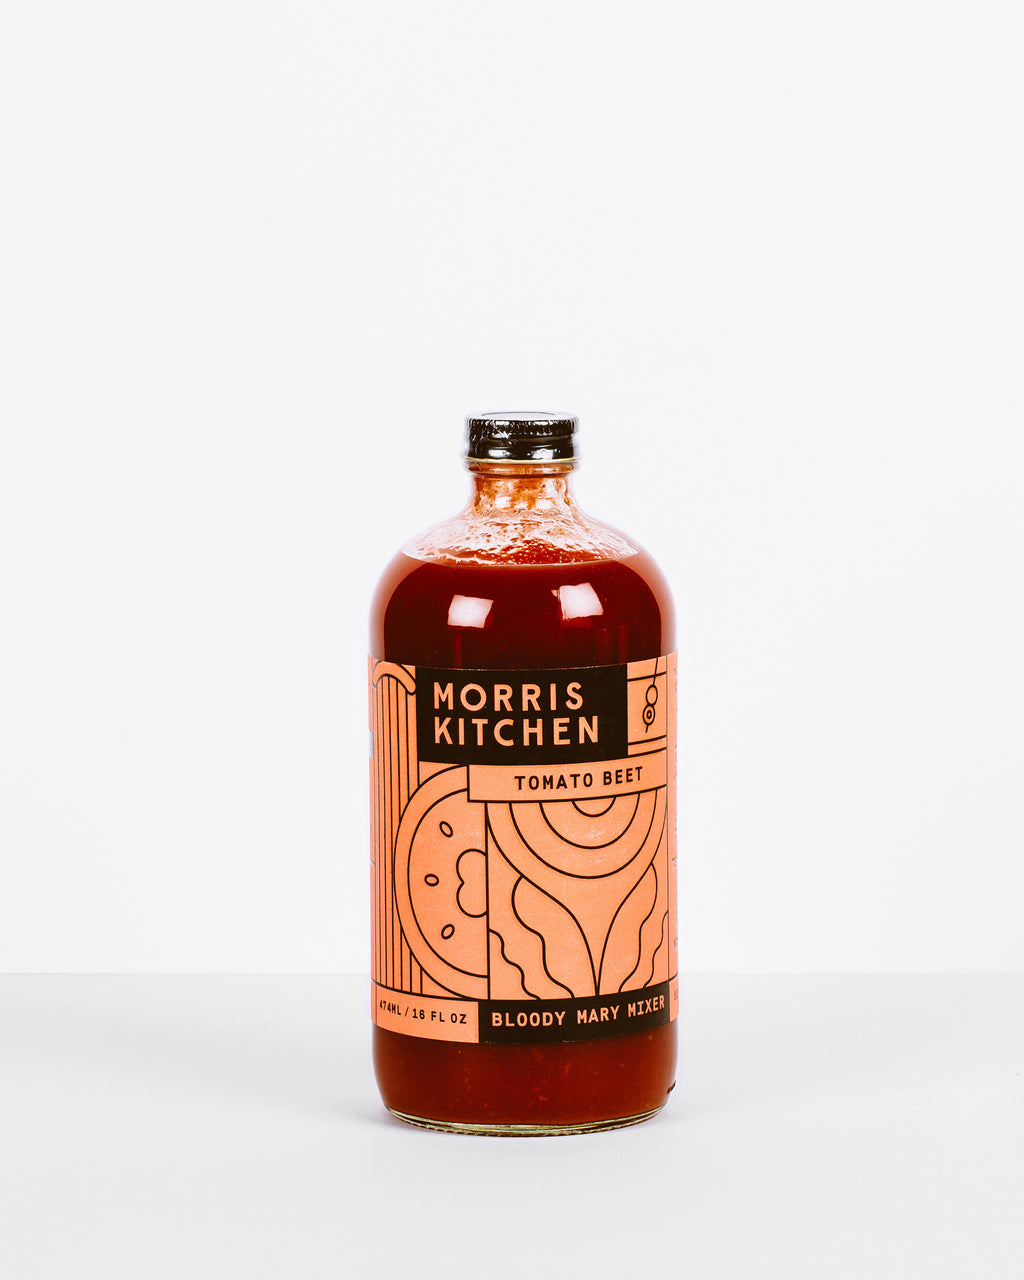 Morris Kitchen - Tomato Beet Mixer